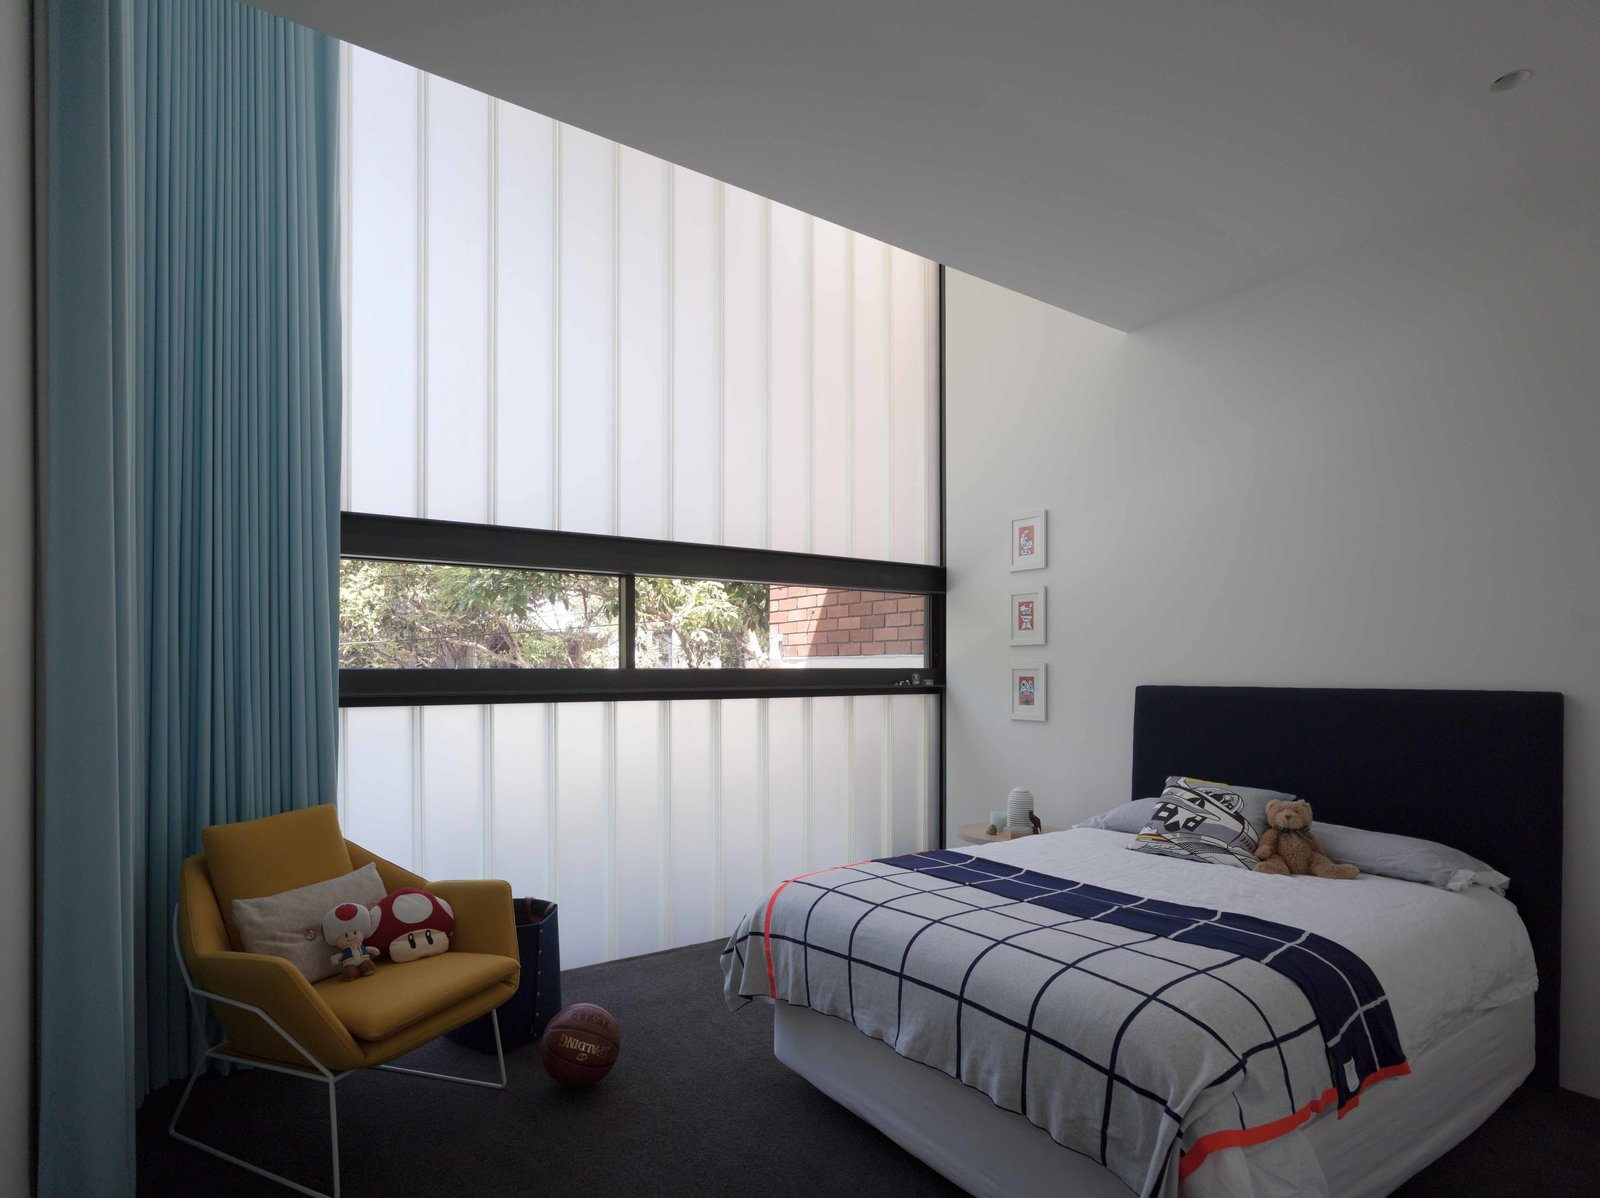 A secondary bedroom meant for a child has a partially translucent, curved glass wall.  Photo 6 of 7 in An Airy Sydney Home Goes Vertical to Gain Space